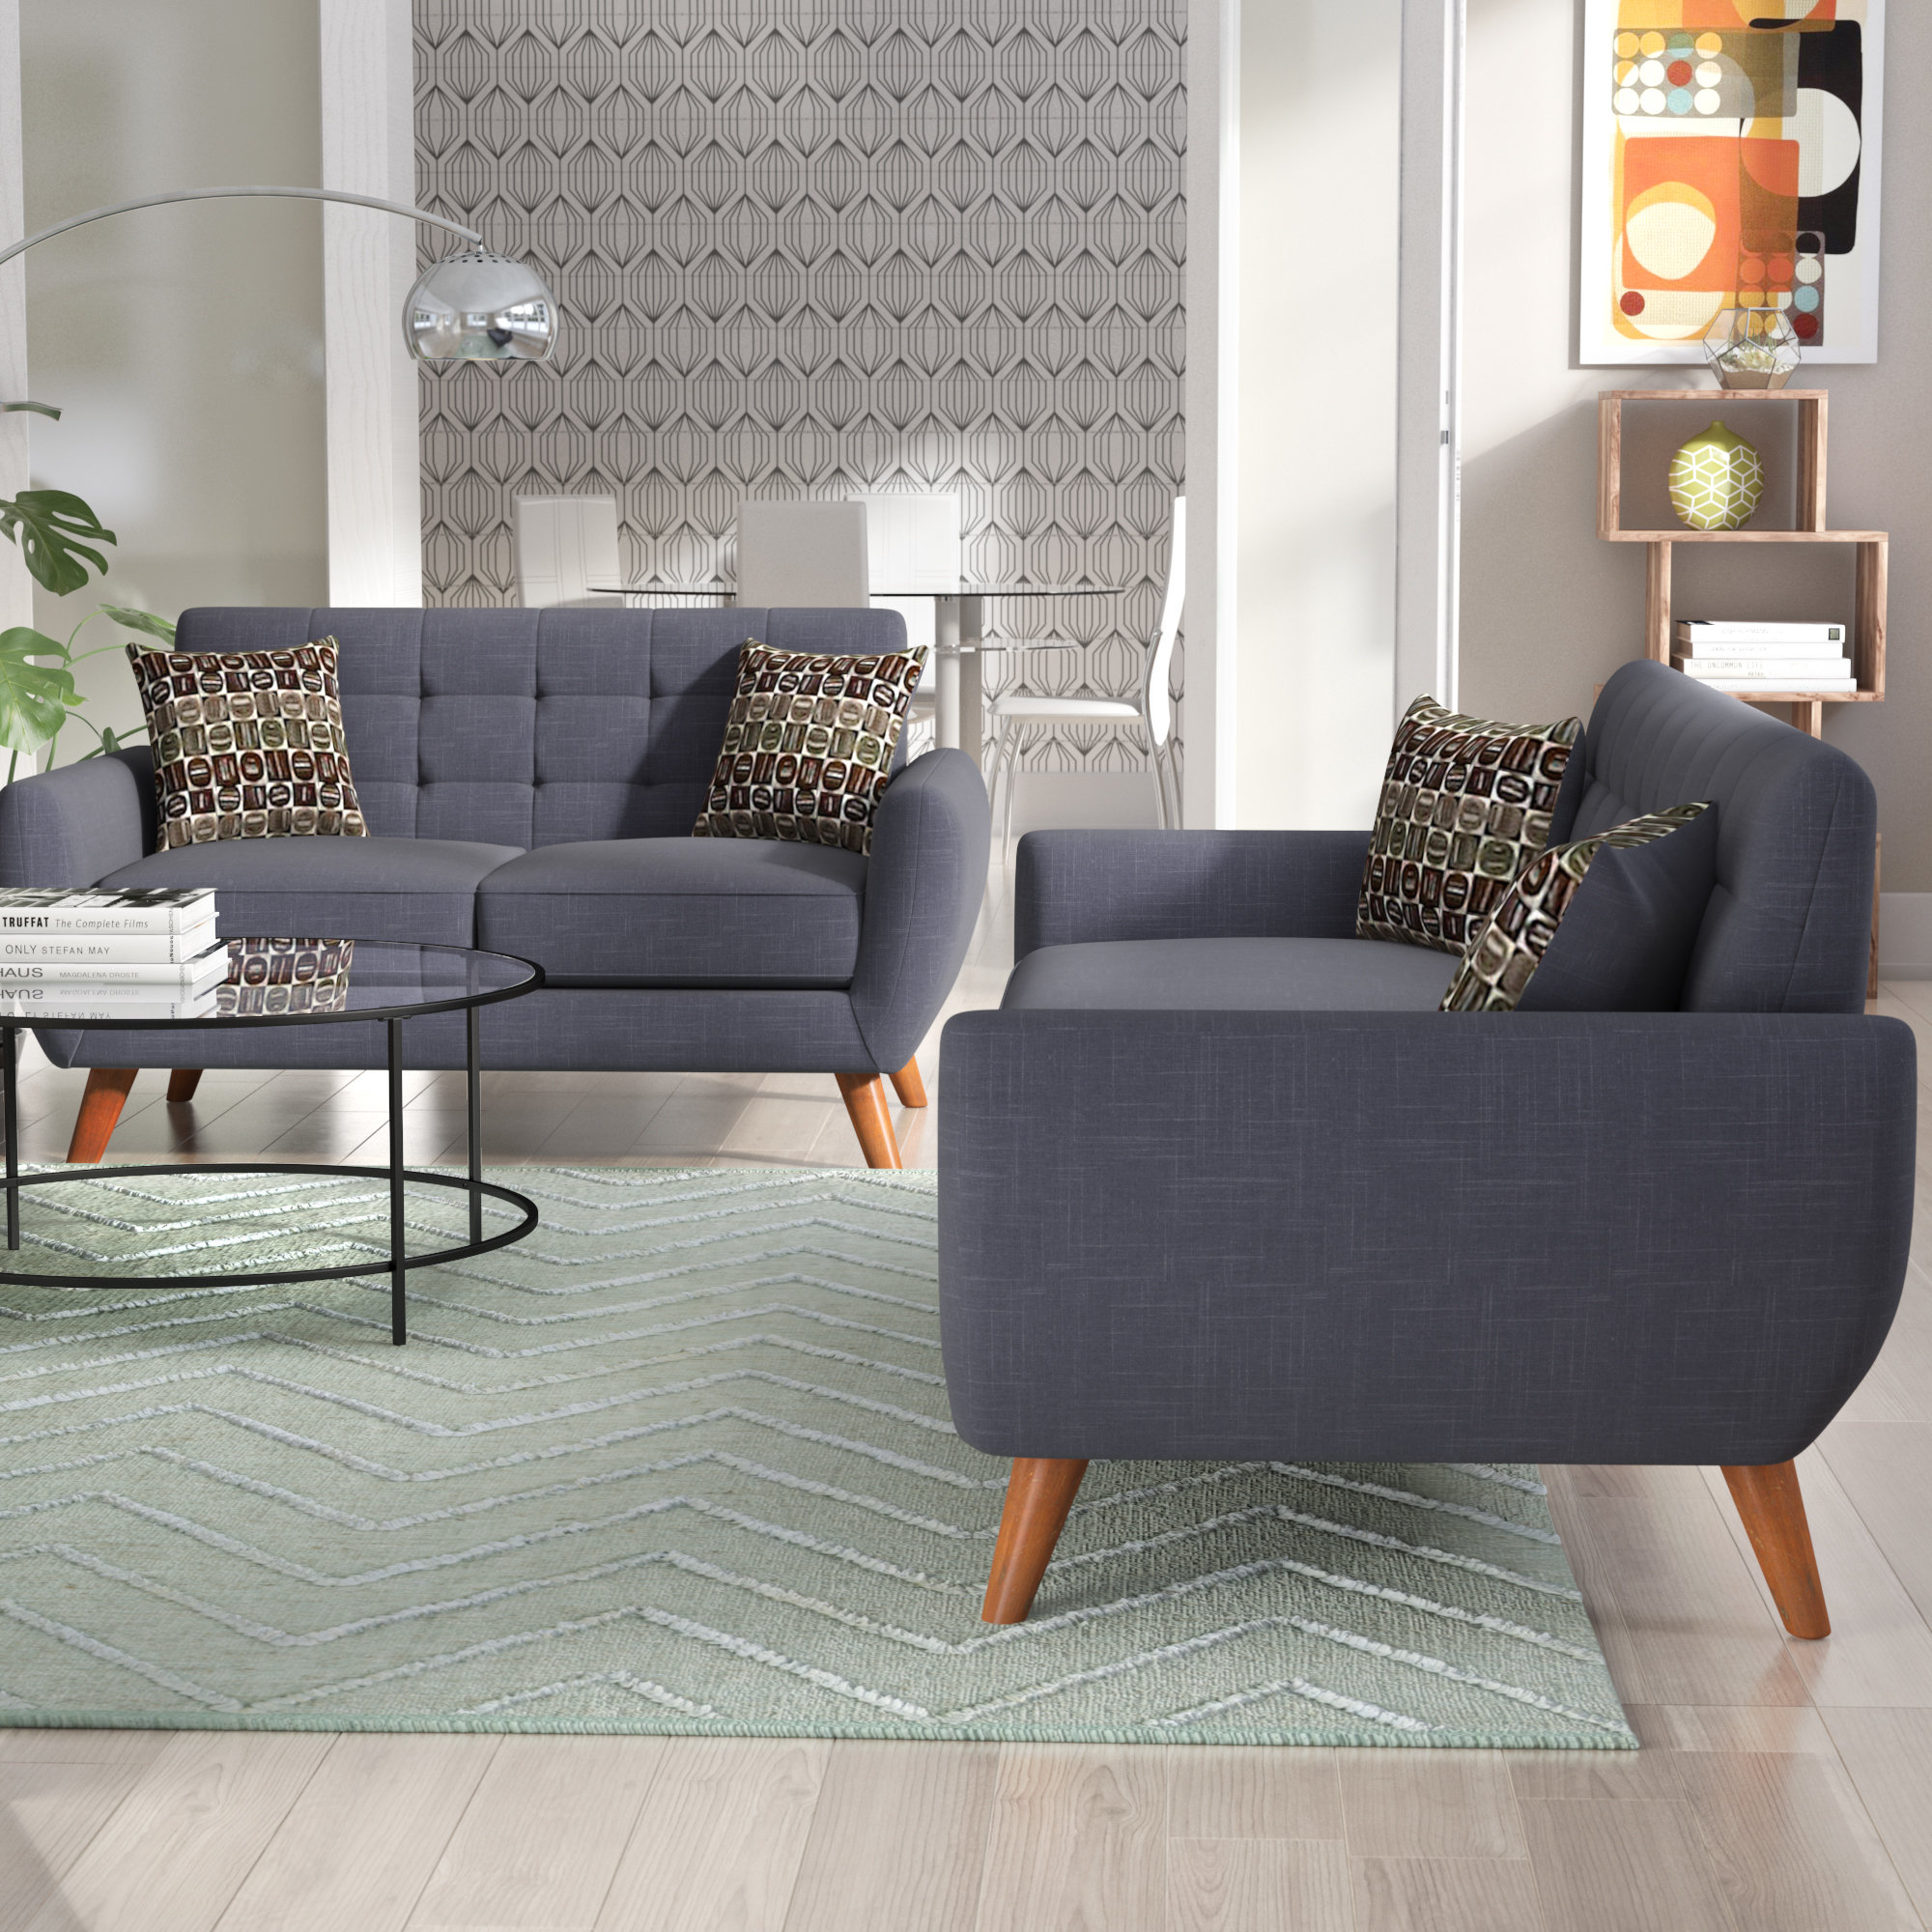 Langley Street Wooten 2 Piece Living Room Set Reviews Wayfair intended for 14 Genius Initiatives of How to Build Sala Set For Small Living Room